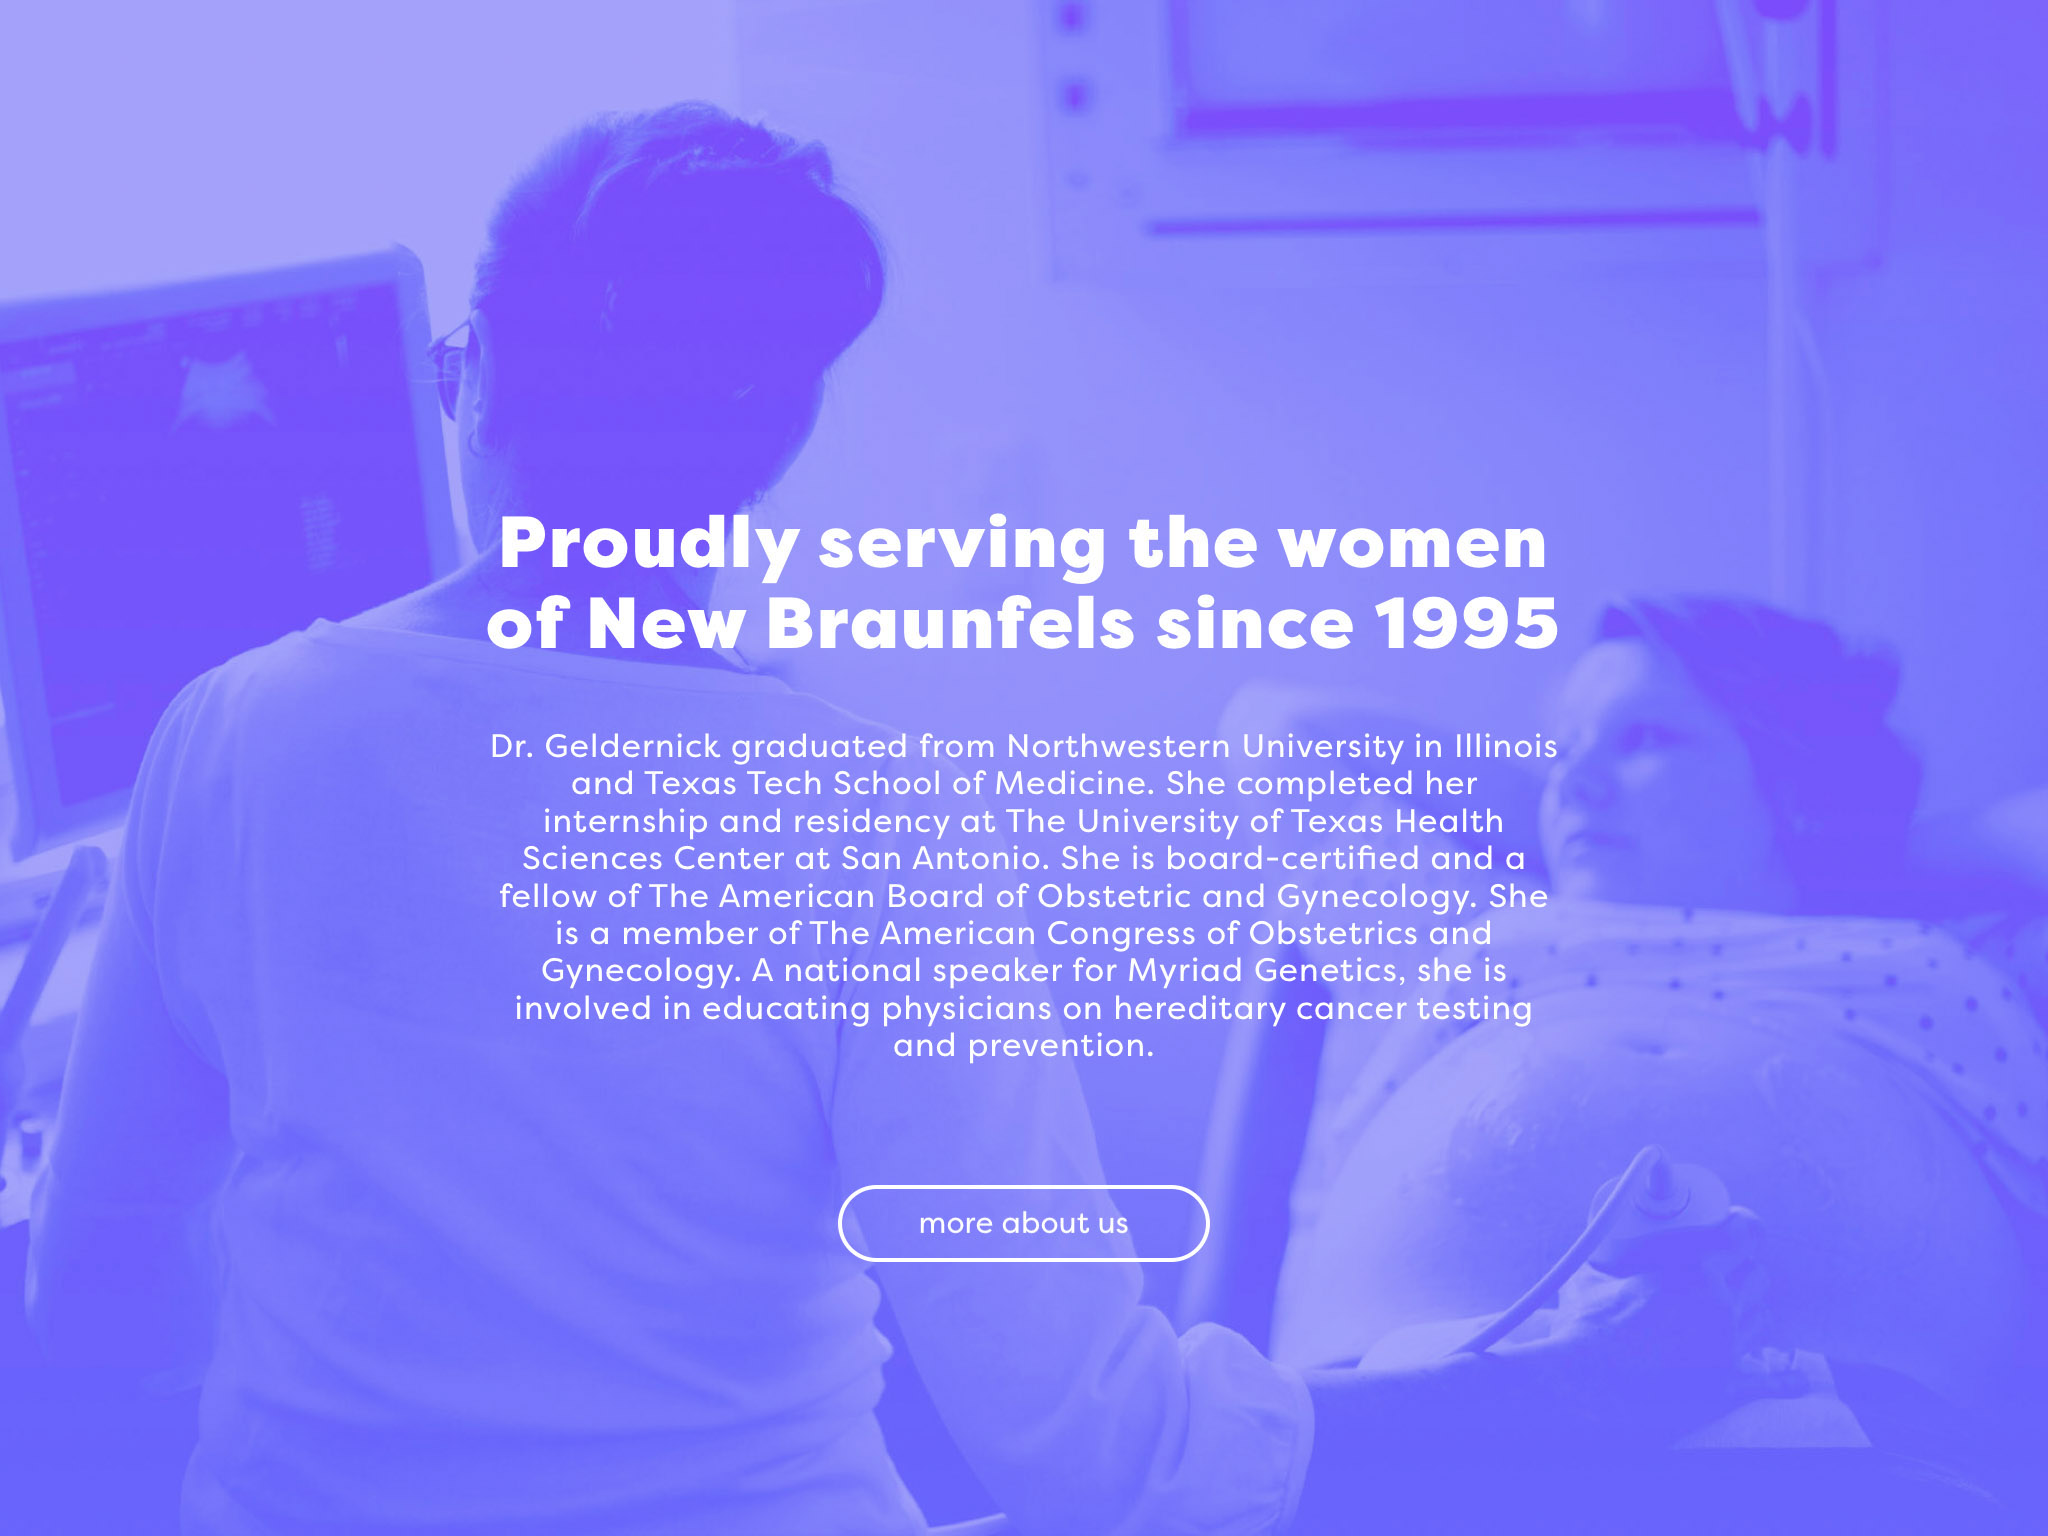 """This image shows a row section of the site, that shares background information about Dr. Geldernick. The title reads """"Proudly serving the women of New Braunfels since 1995"""" - the text is overplayed on a purple-blue duotone image of a female doctor performing an ultrasound."""